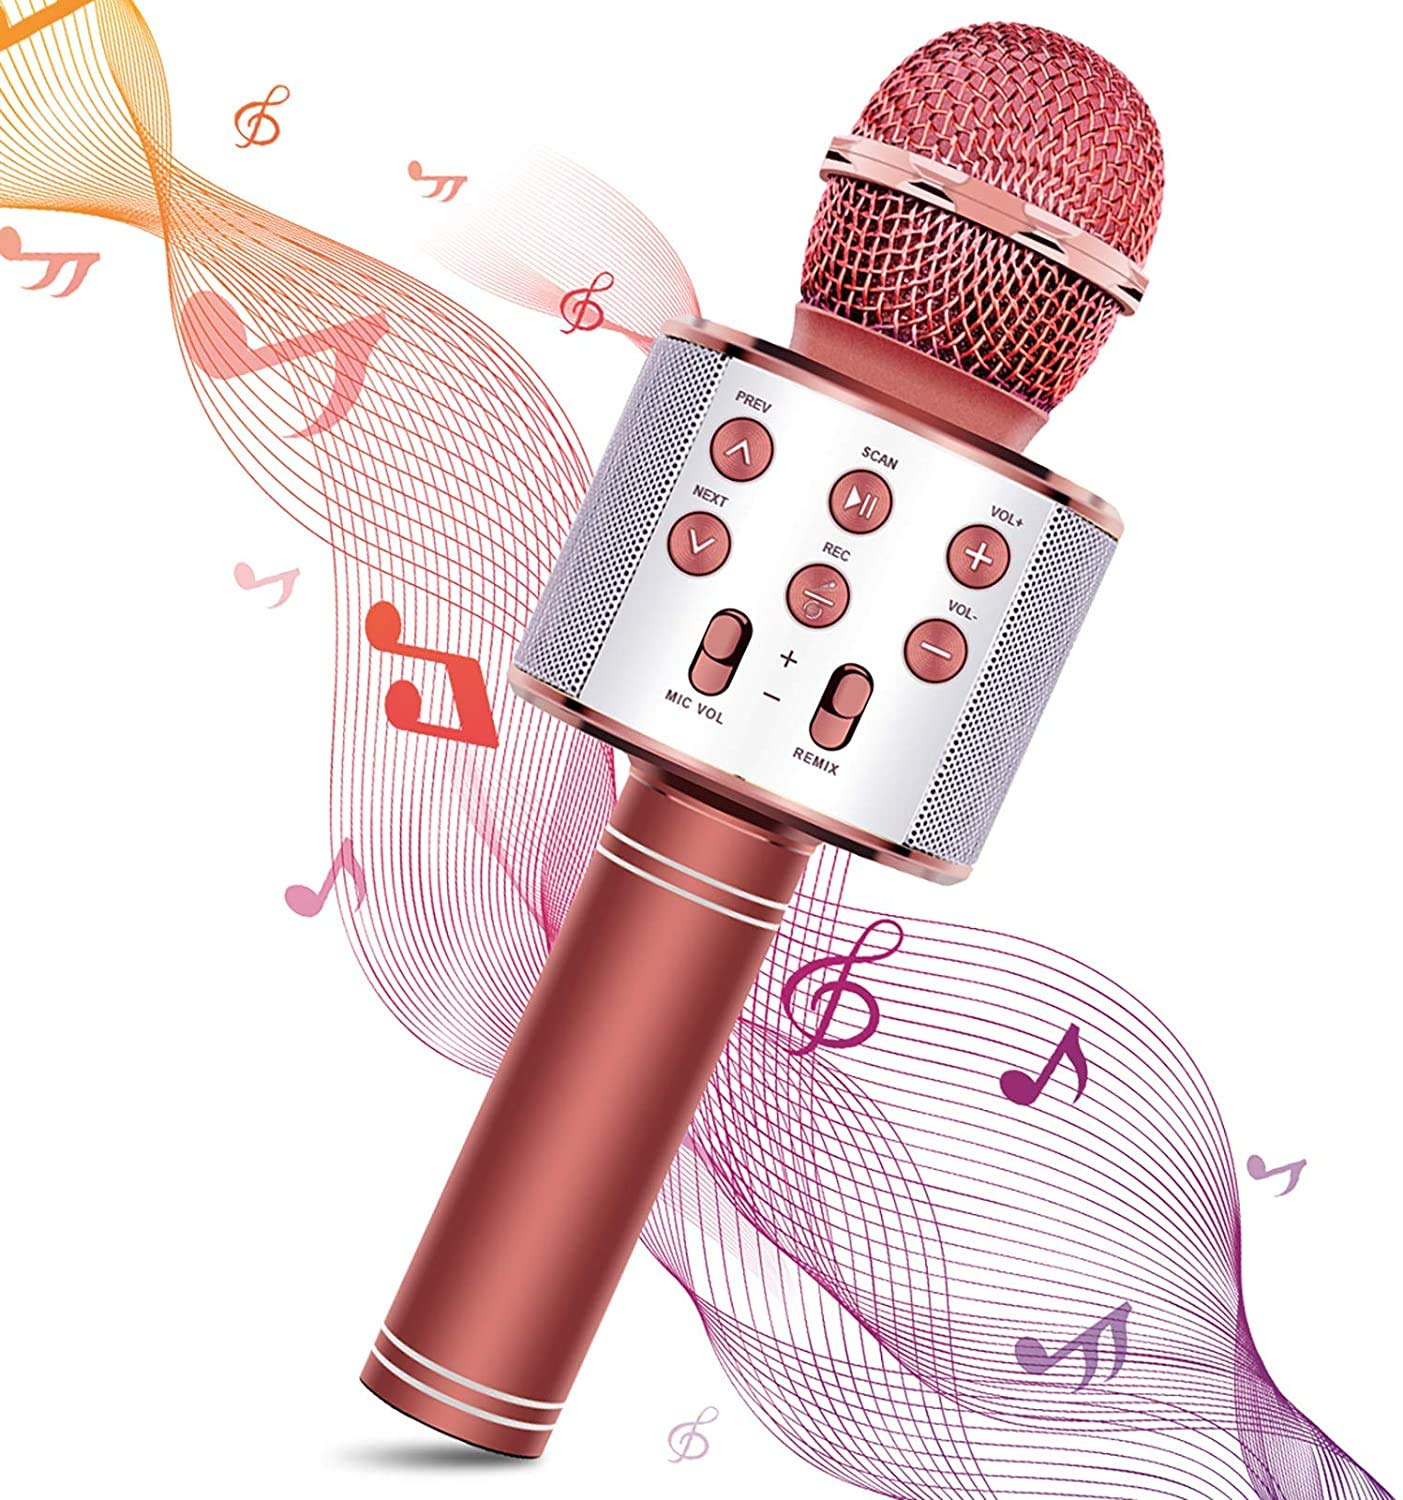 DigitCont Bluetooth Karaoke, Wireless Microphone 5-in-1 Portable Handheld Karaoke Mic, Speaker Machine Player Recorder with Adjustable Remix FM Radio Christmas Birthday Home Party for Kids Adults